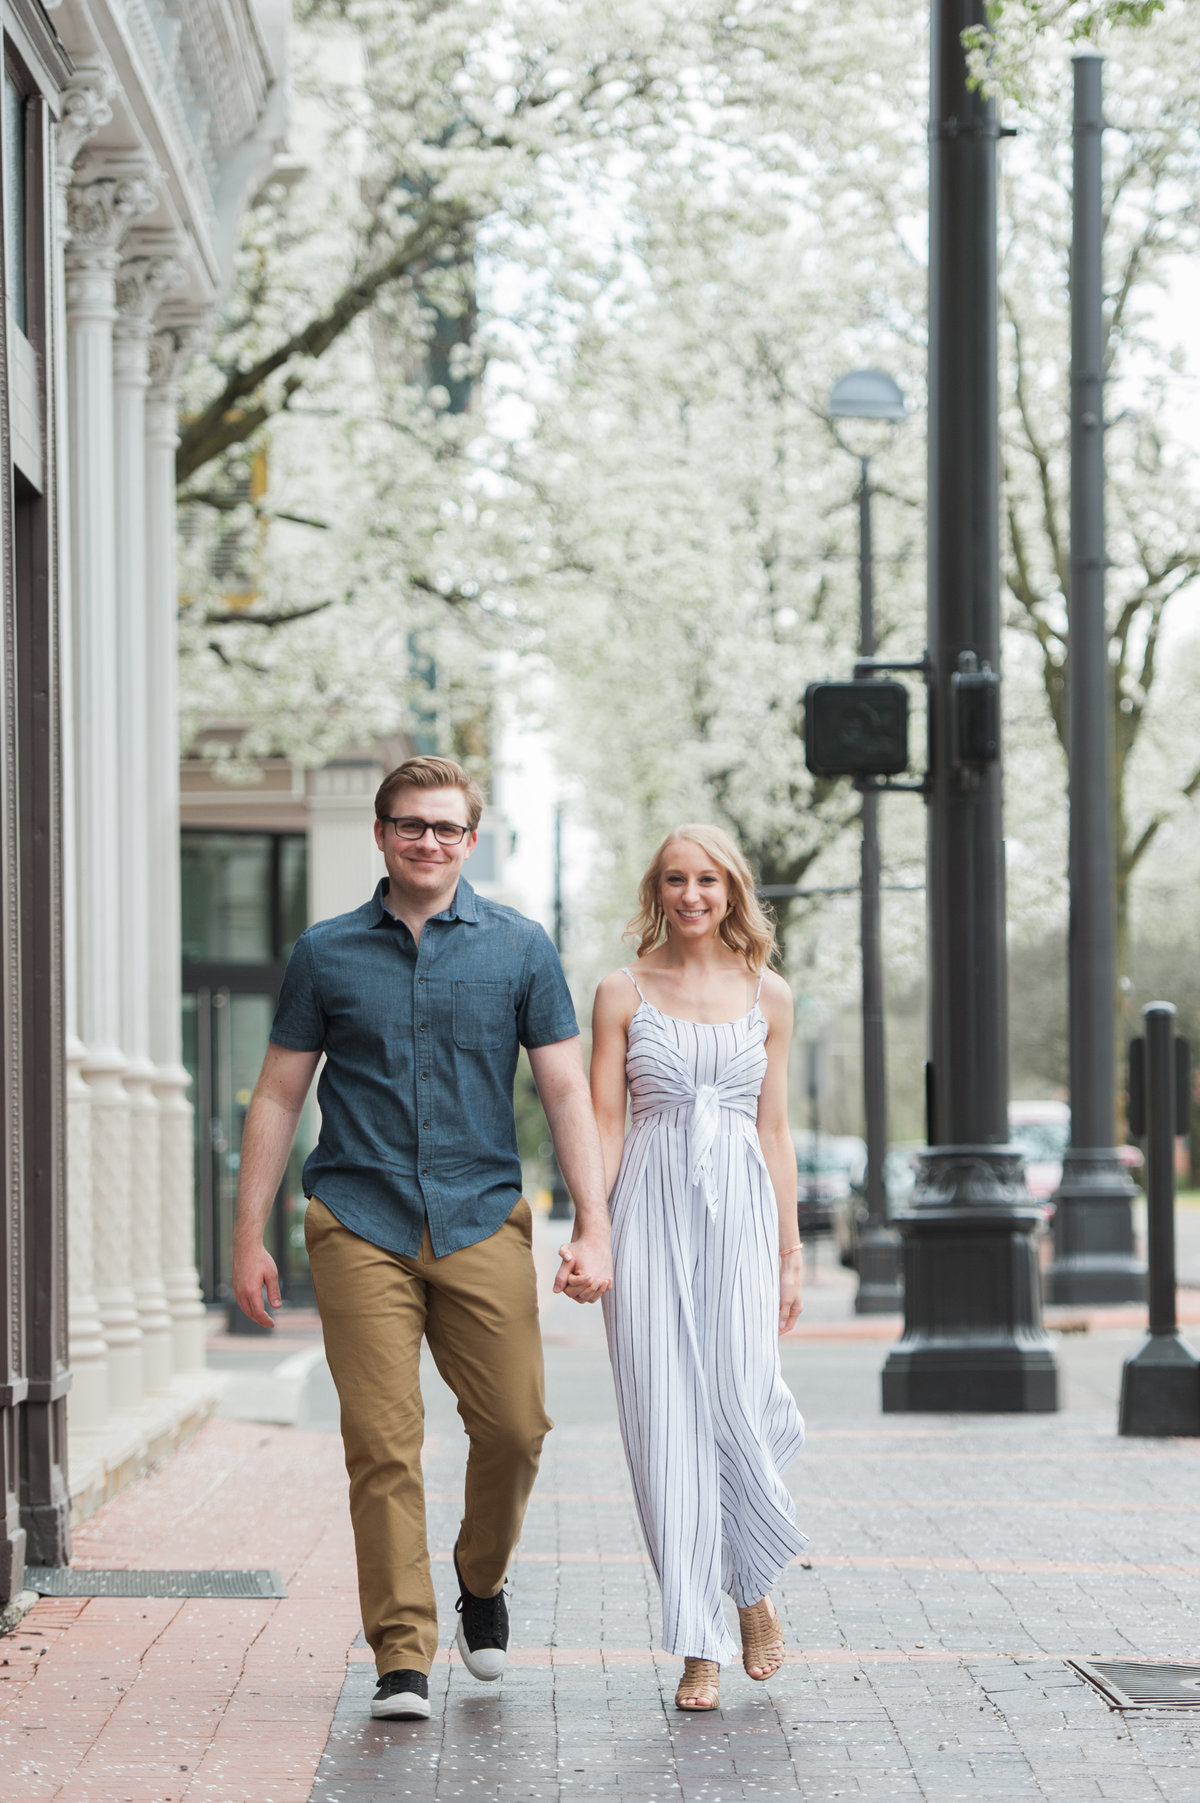 Engagement Photos in Central Indiana by Rachael Foster Photography (16 of 53)